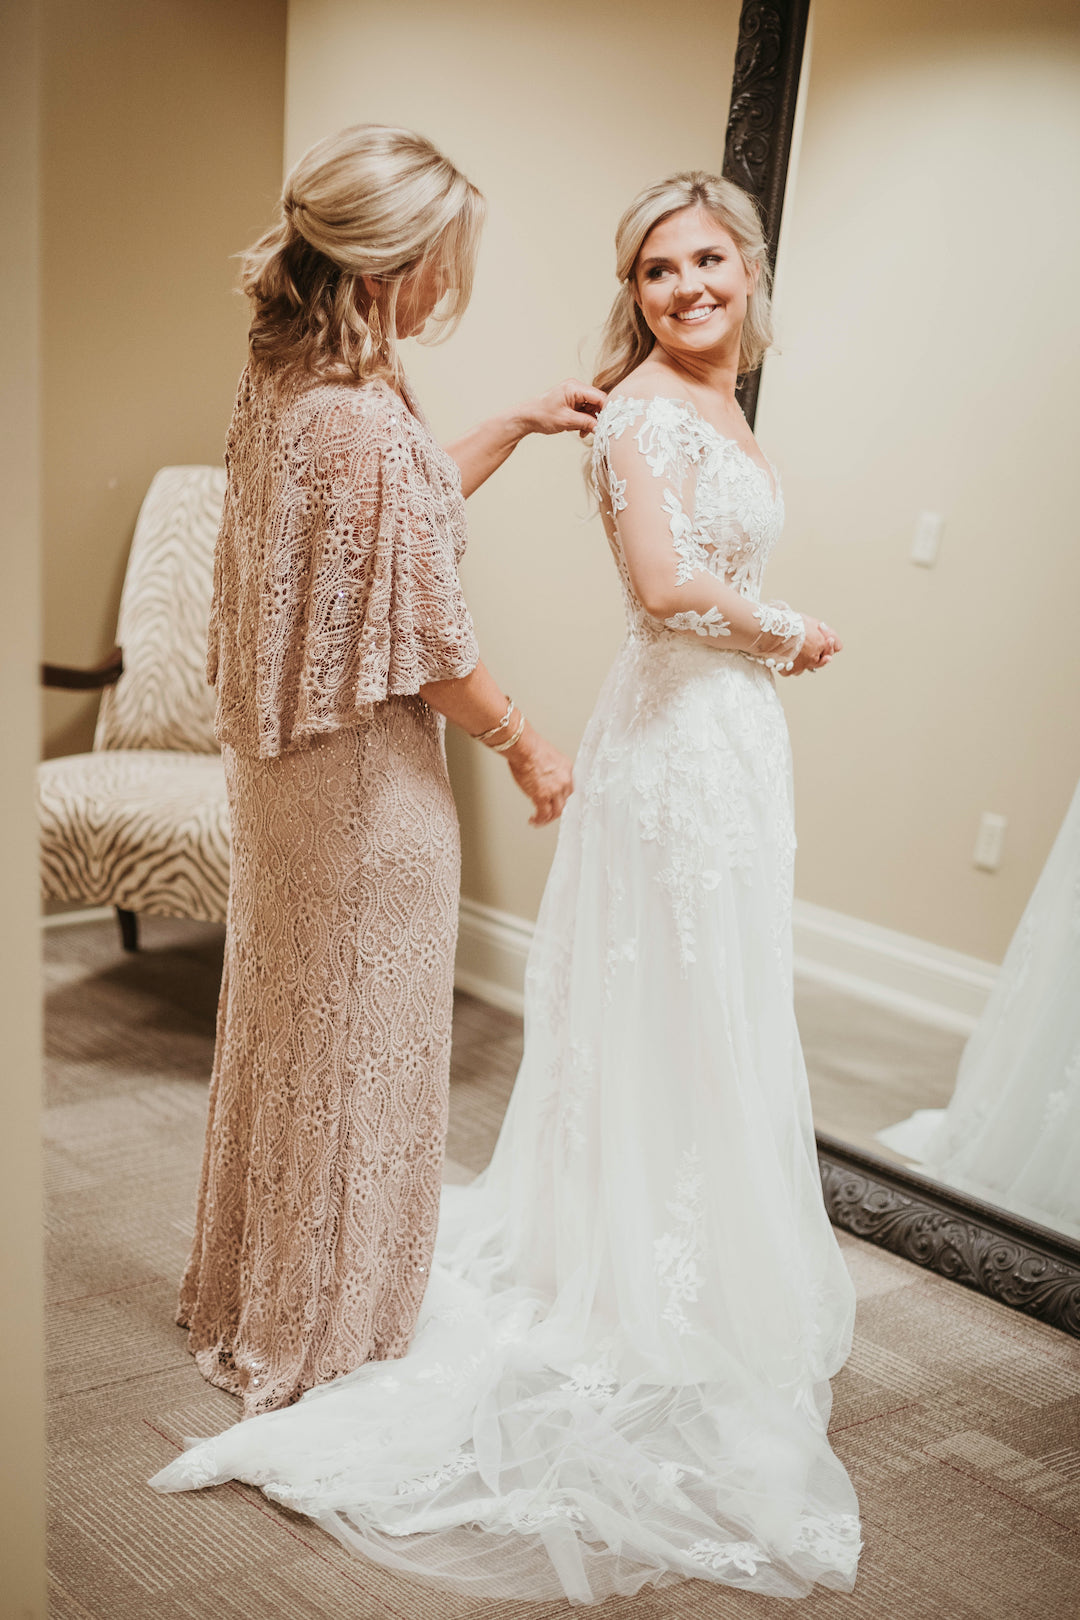 Mother daughter wedding photo: Romantic Country Club Soiree by Juniper Weddings featured on Nashville Bride Guide